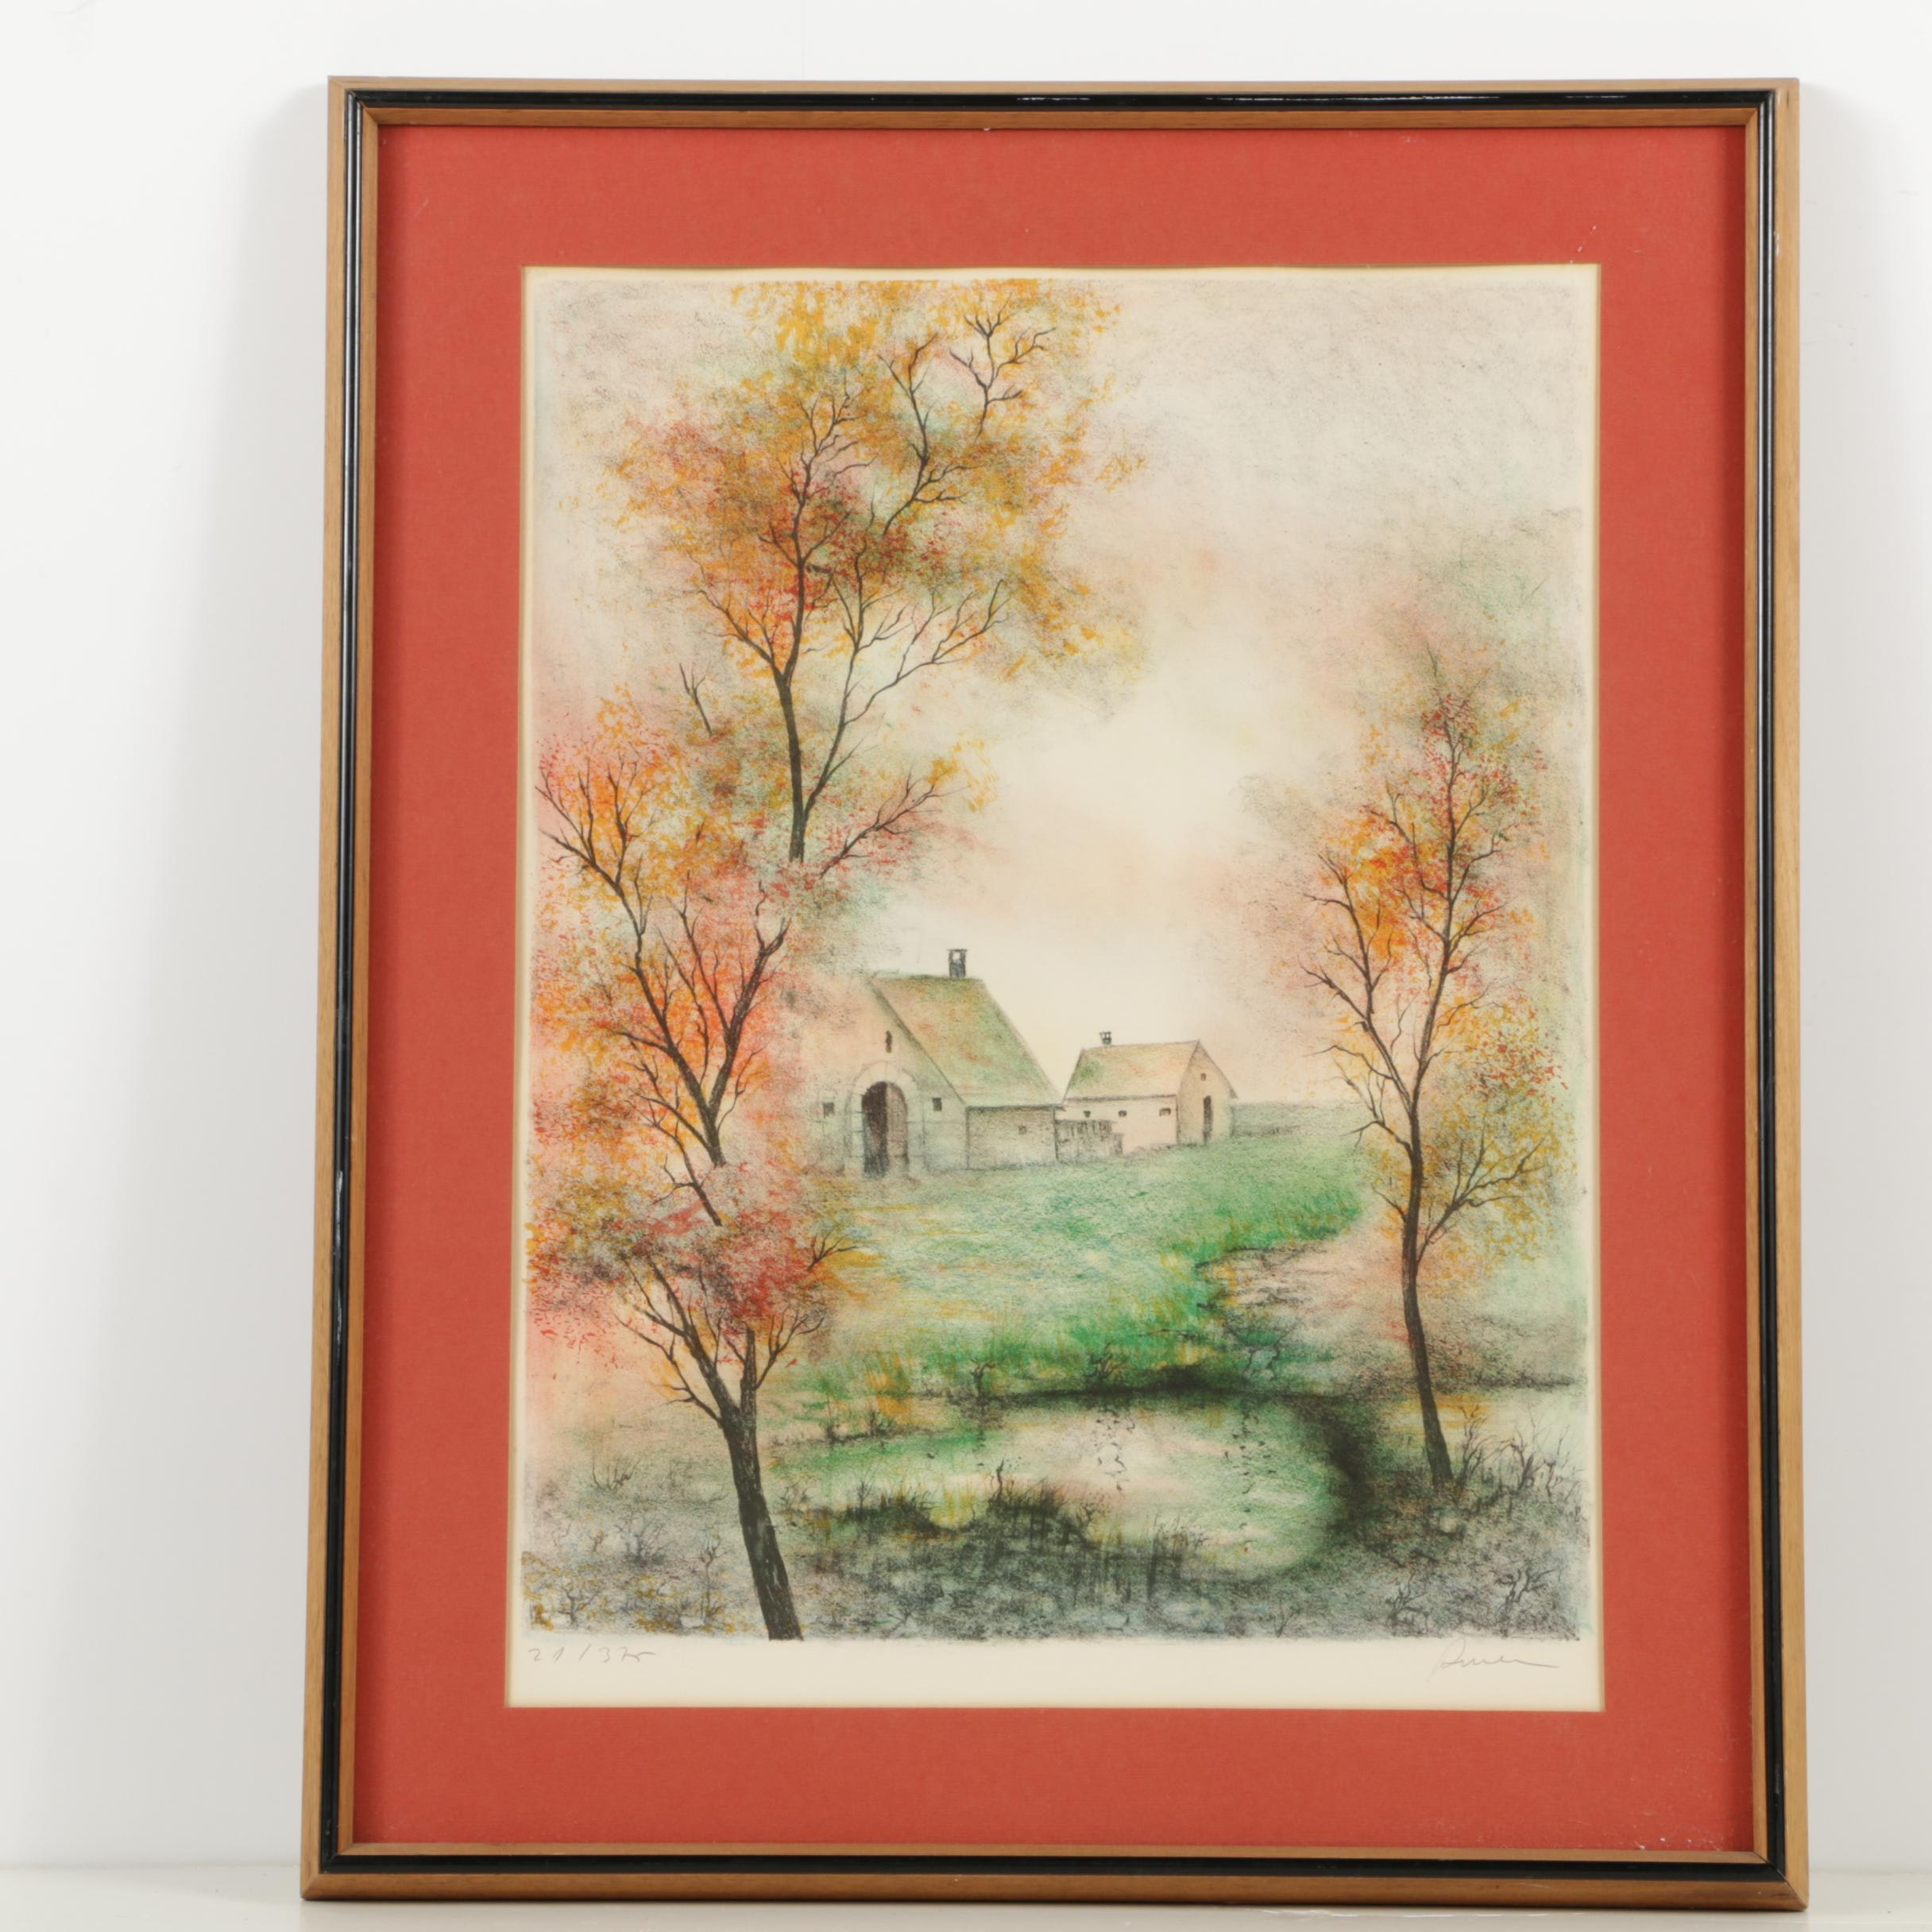 Limited Edition Color Lithograph of Fall Scene